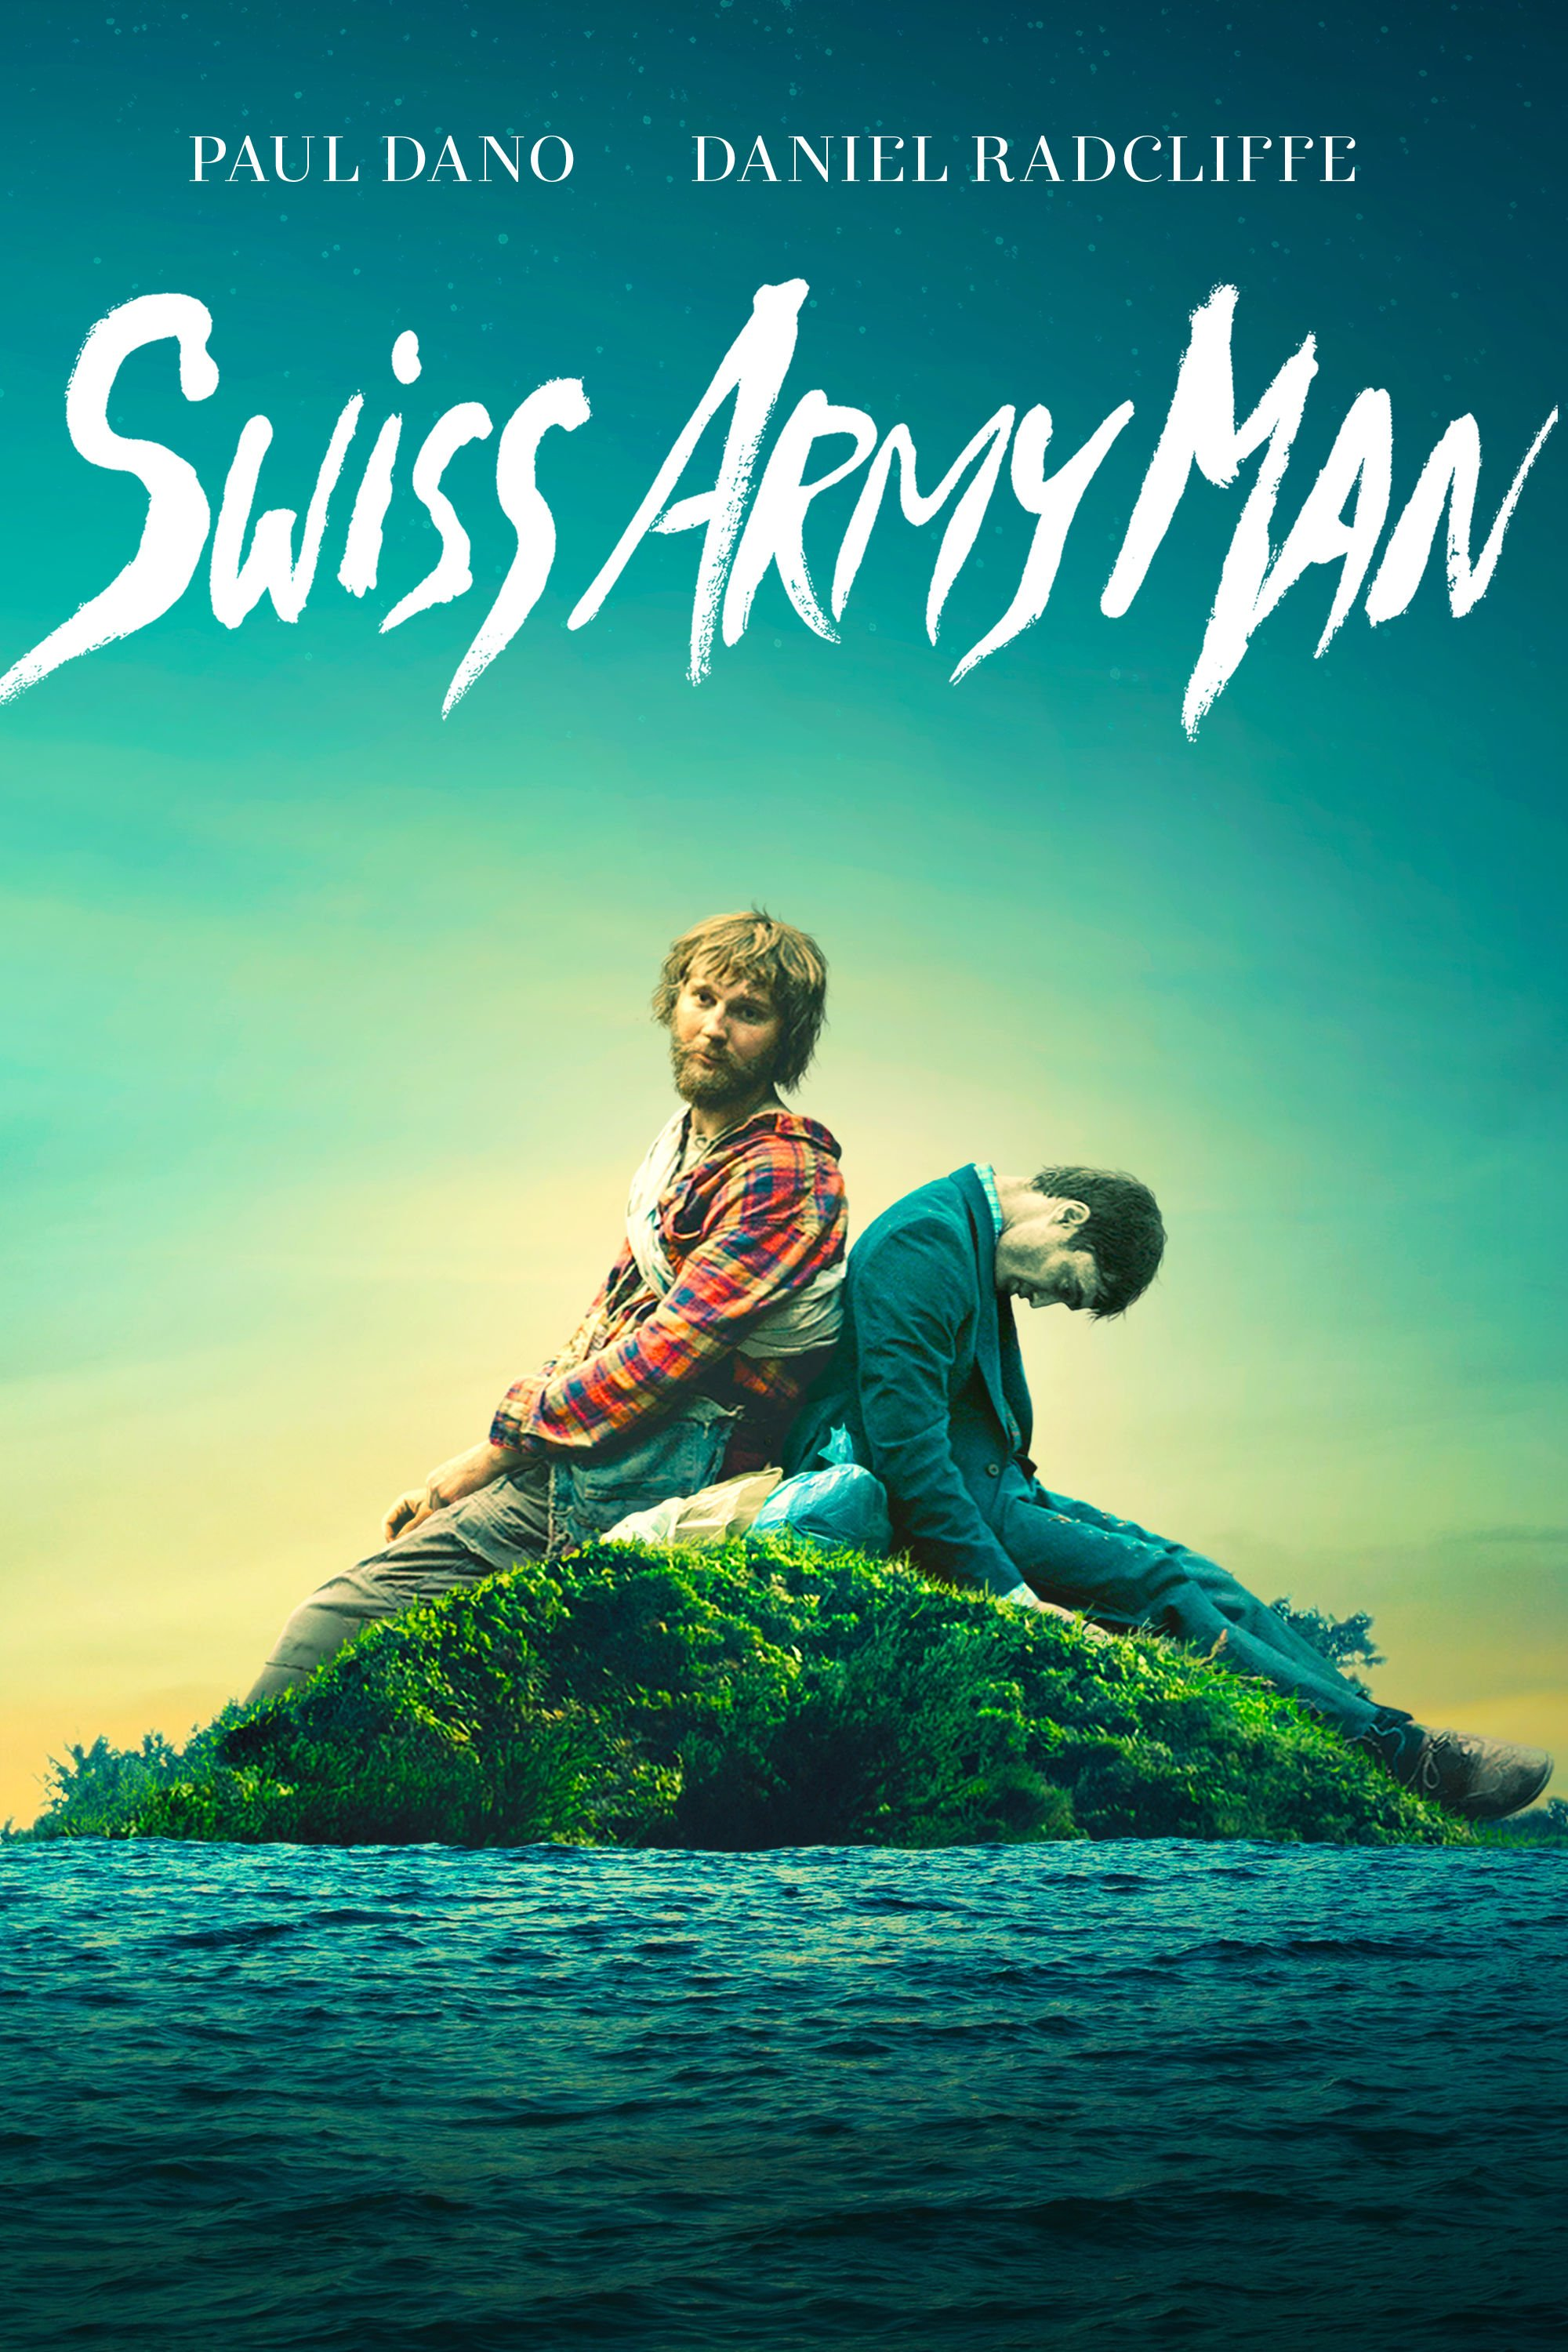 swiss-army-man-filming-locations-itunes-poster